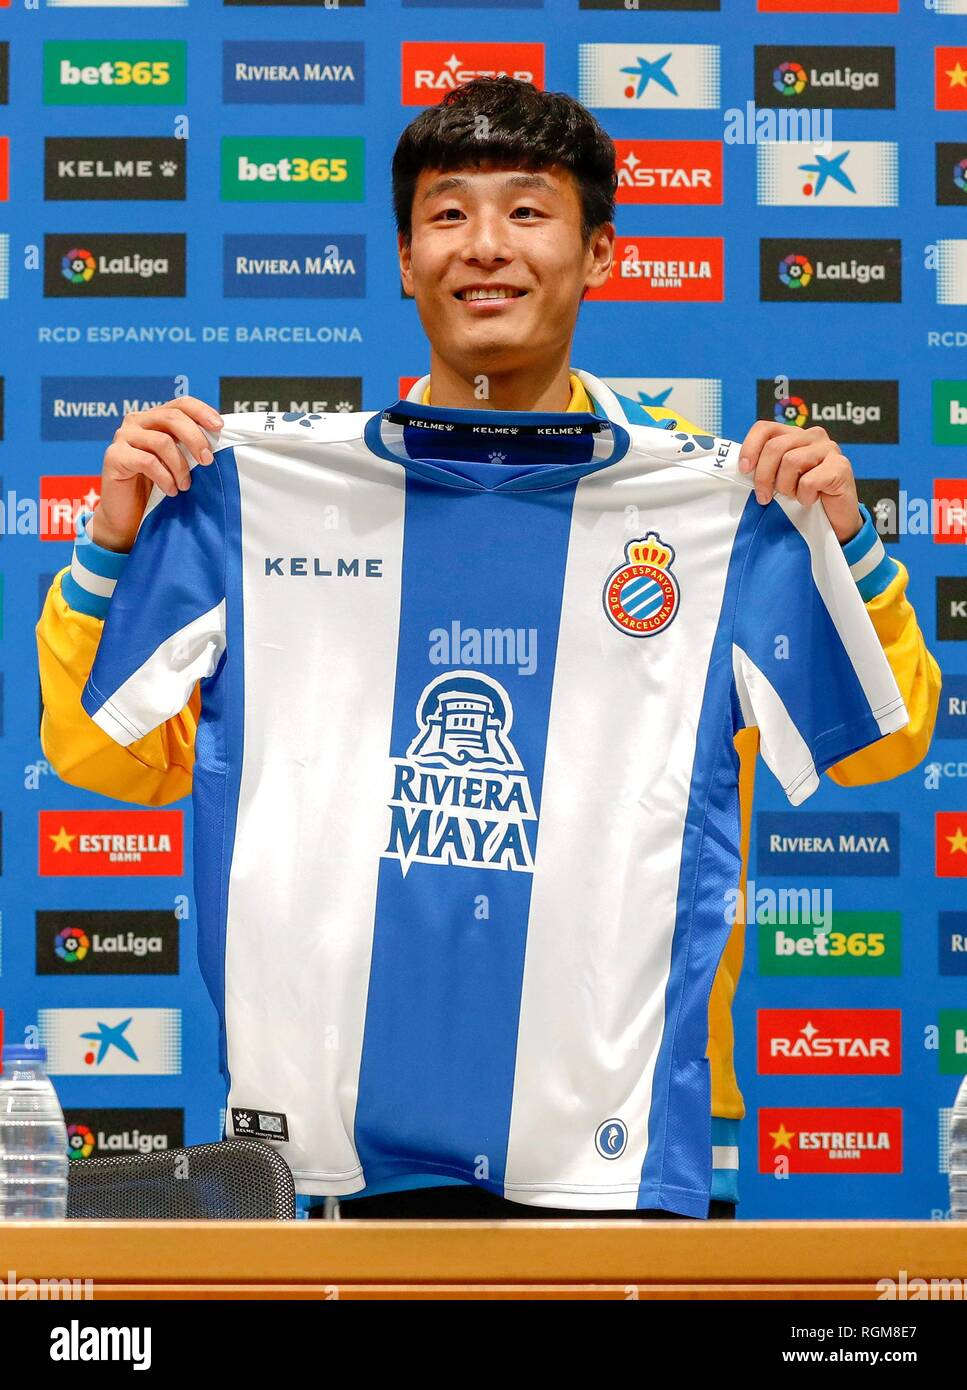 (190130) -- MADRID, Jan. 30, 2019 (Xinhua) -- Wu Lei shows his jersey at his first press conference held by RCD Espanyol in Barcelona, Spain, Jan. 29, 2019. Spanish Liga Santander club, Espanyol presented the new coming Chinese striker Wu Lei to the fans and press on Tuesday. (Xinhua/Joan Gosa) - Stock Image